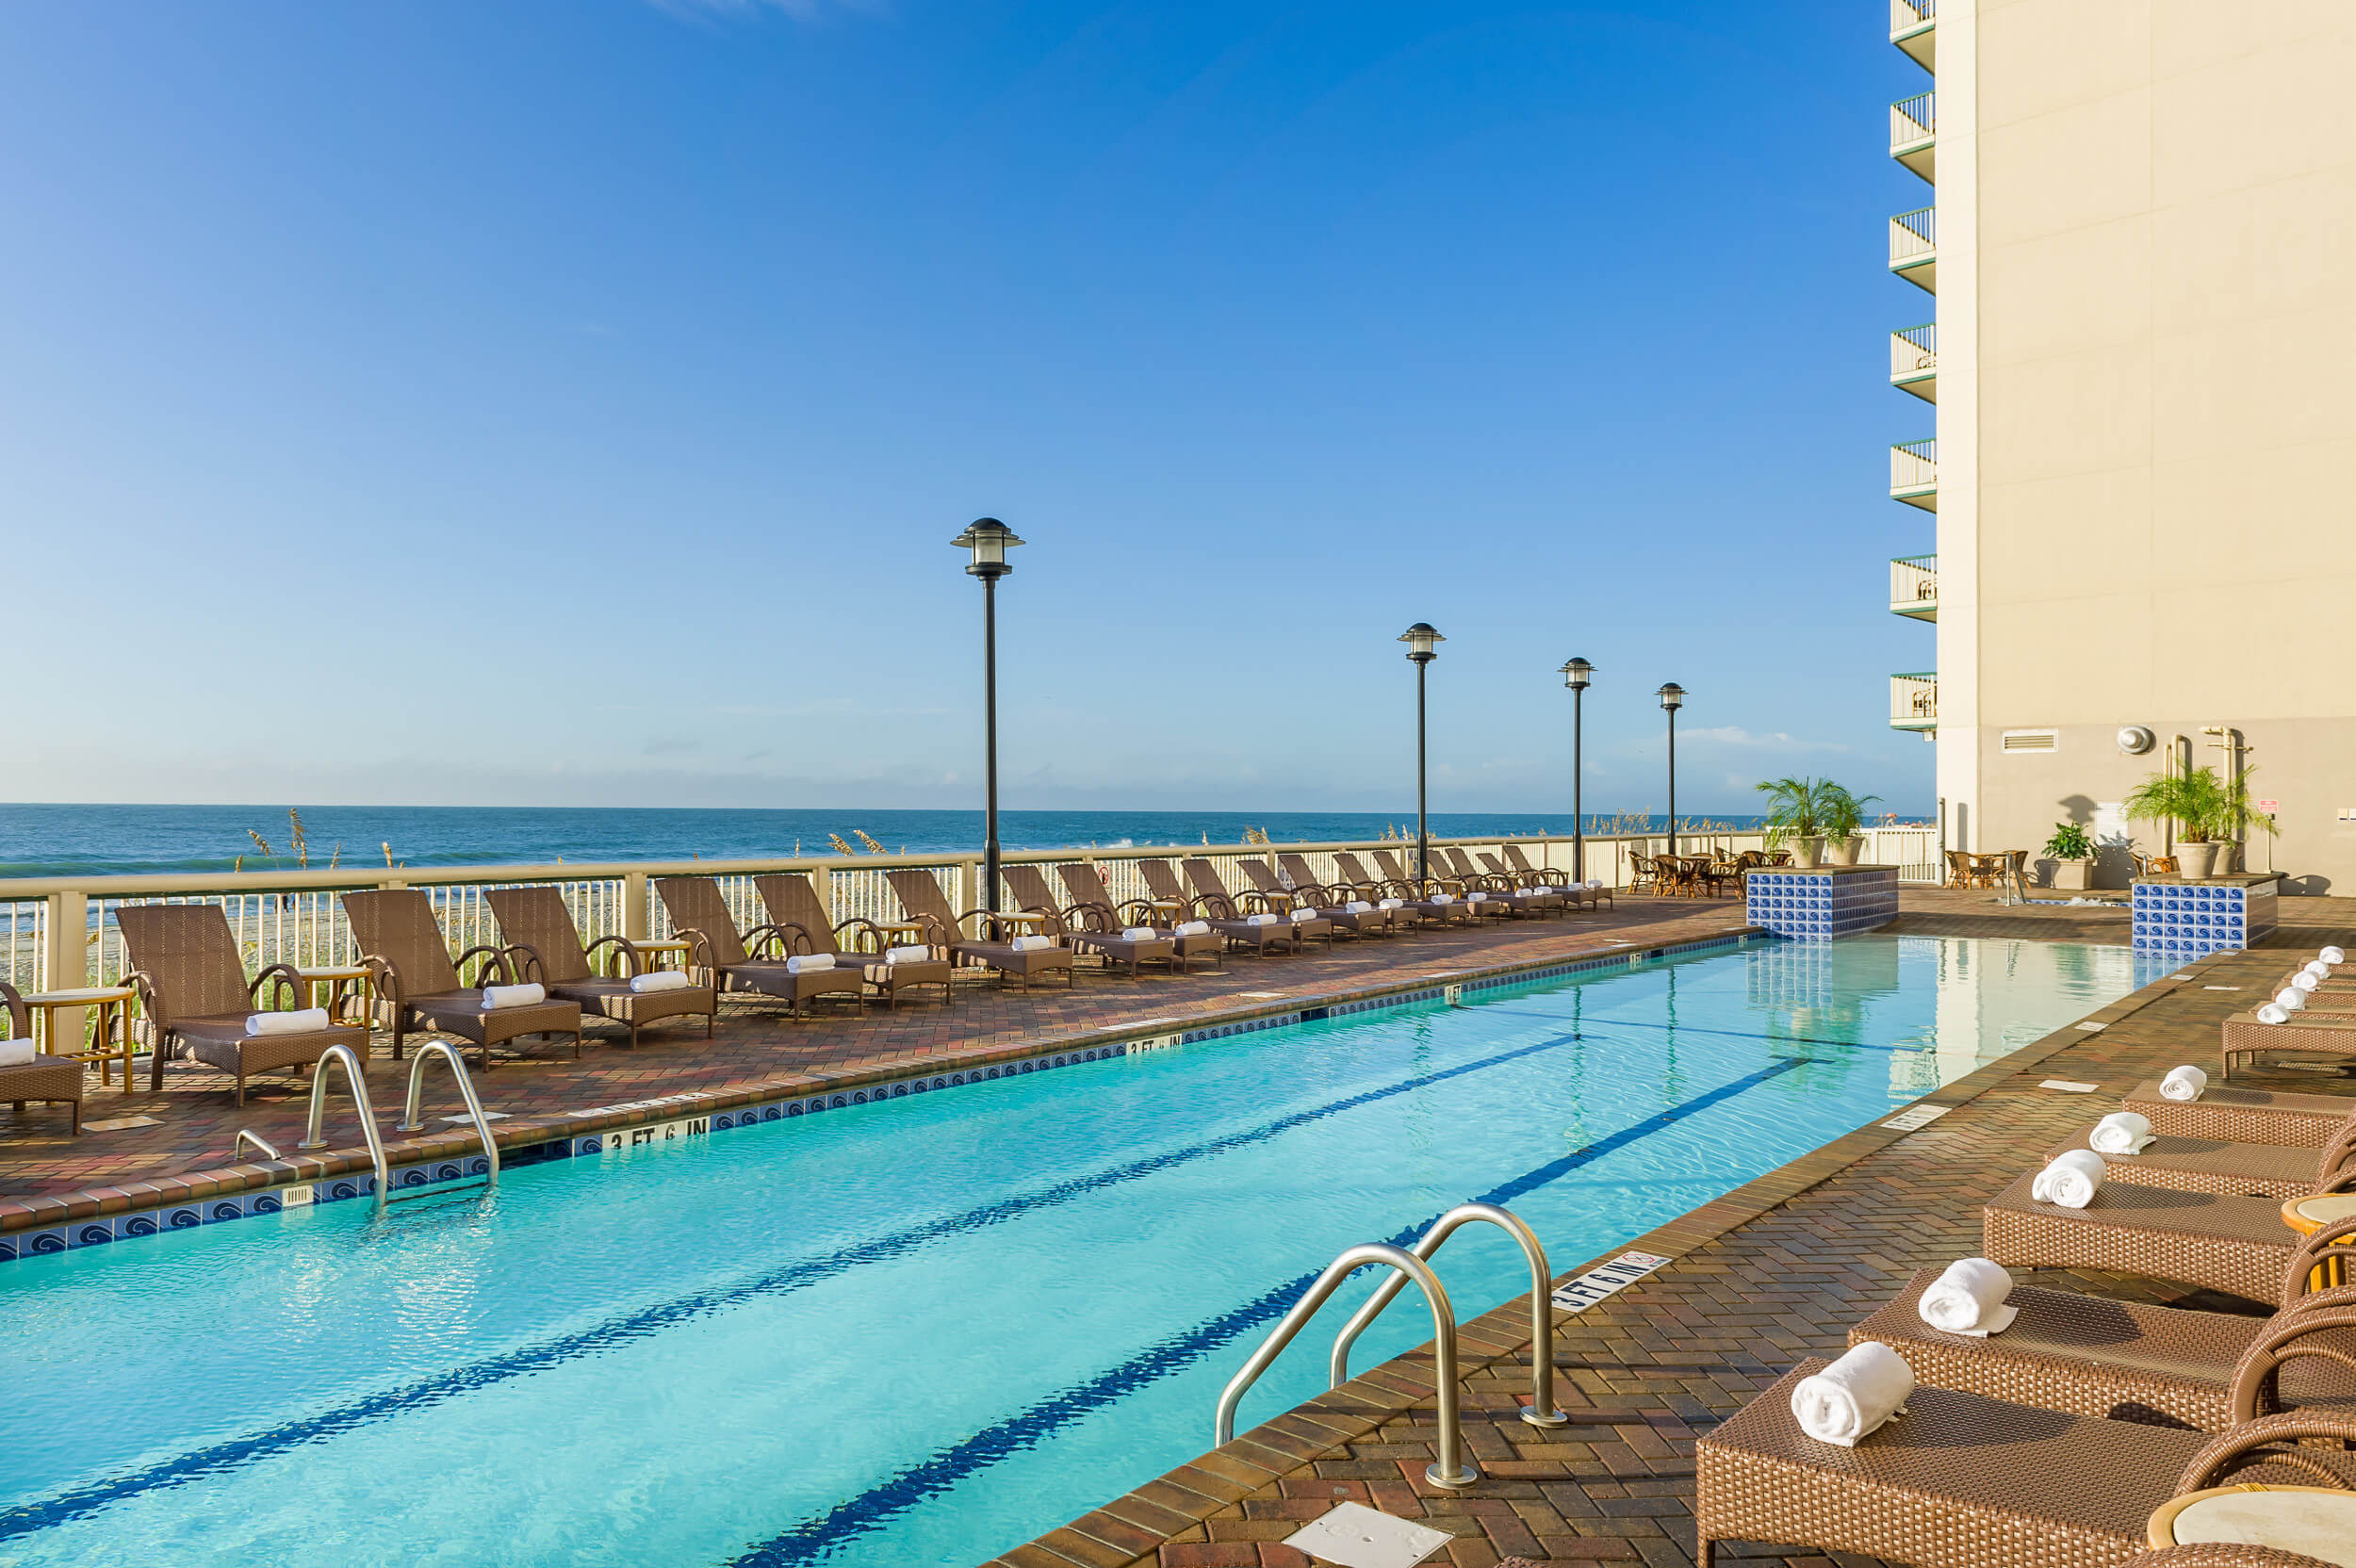 Heated outdoor pool with beach in background | Westgate Myrtle Beach Oceanfront Resort